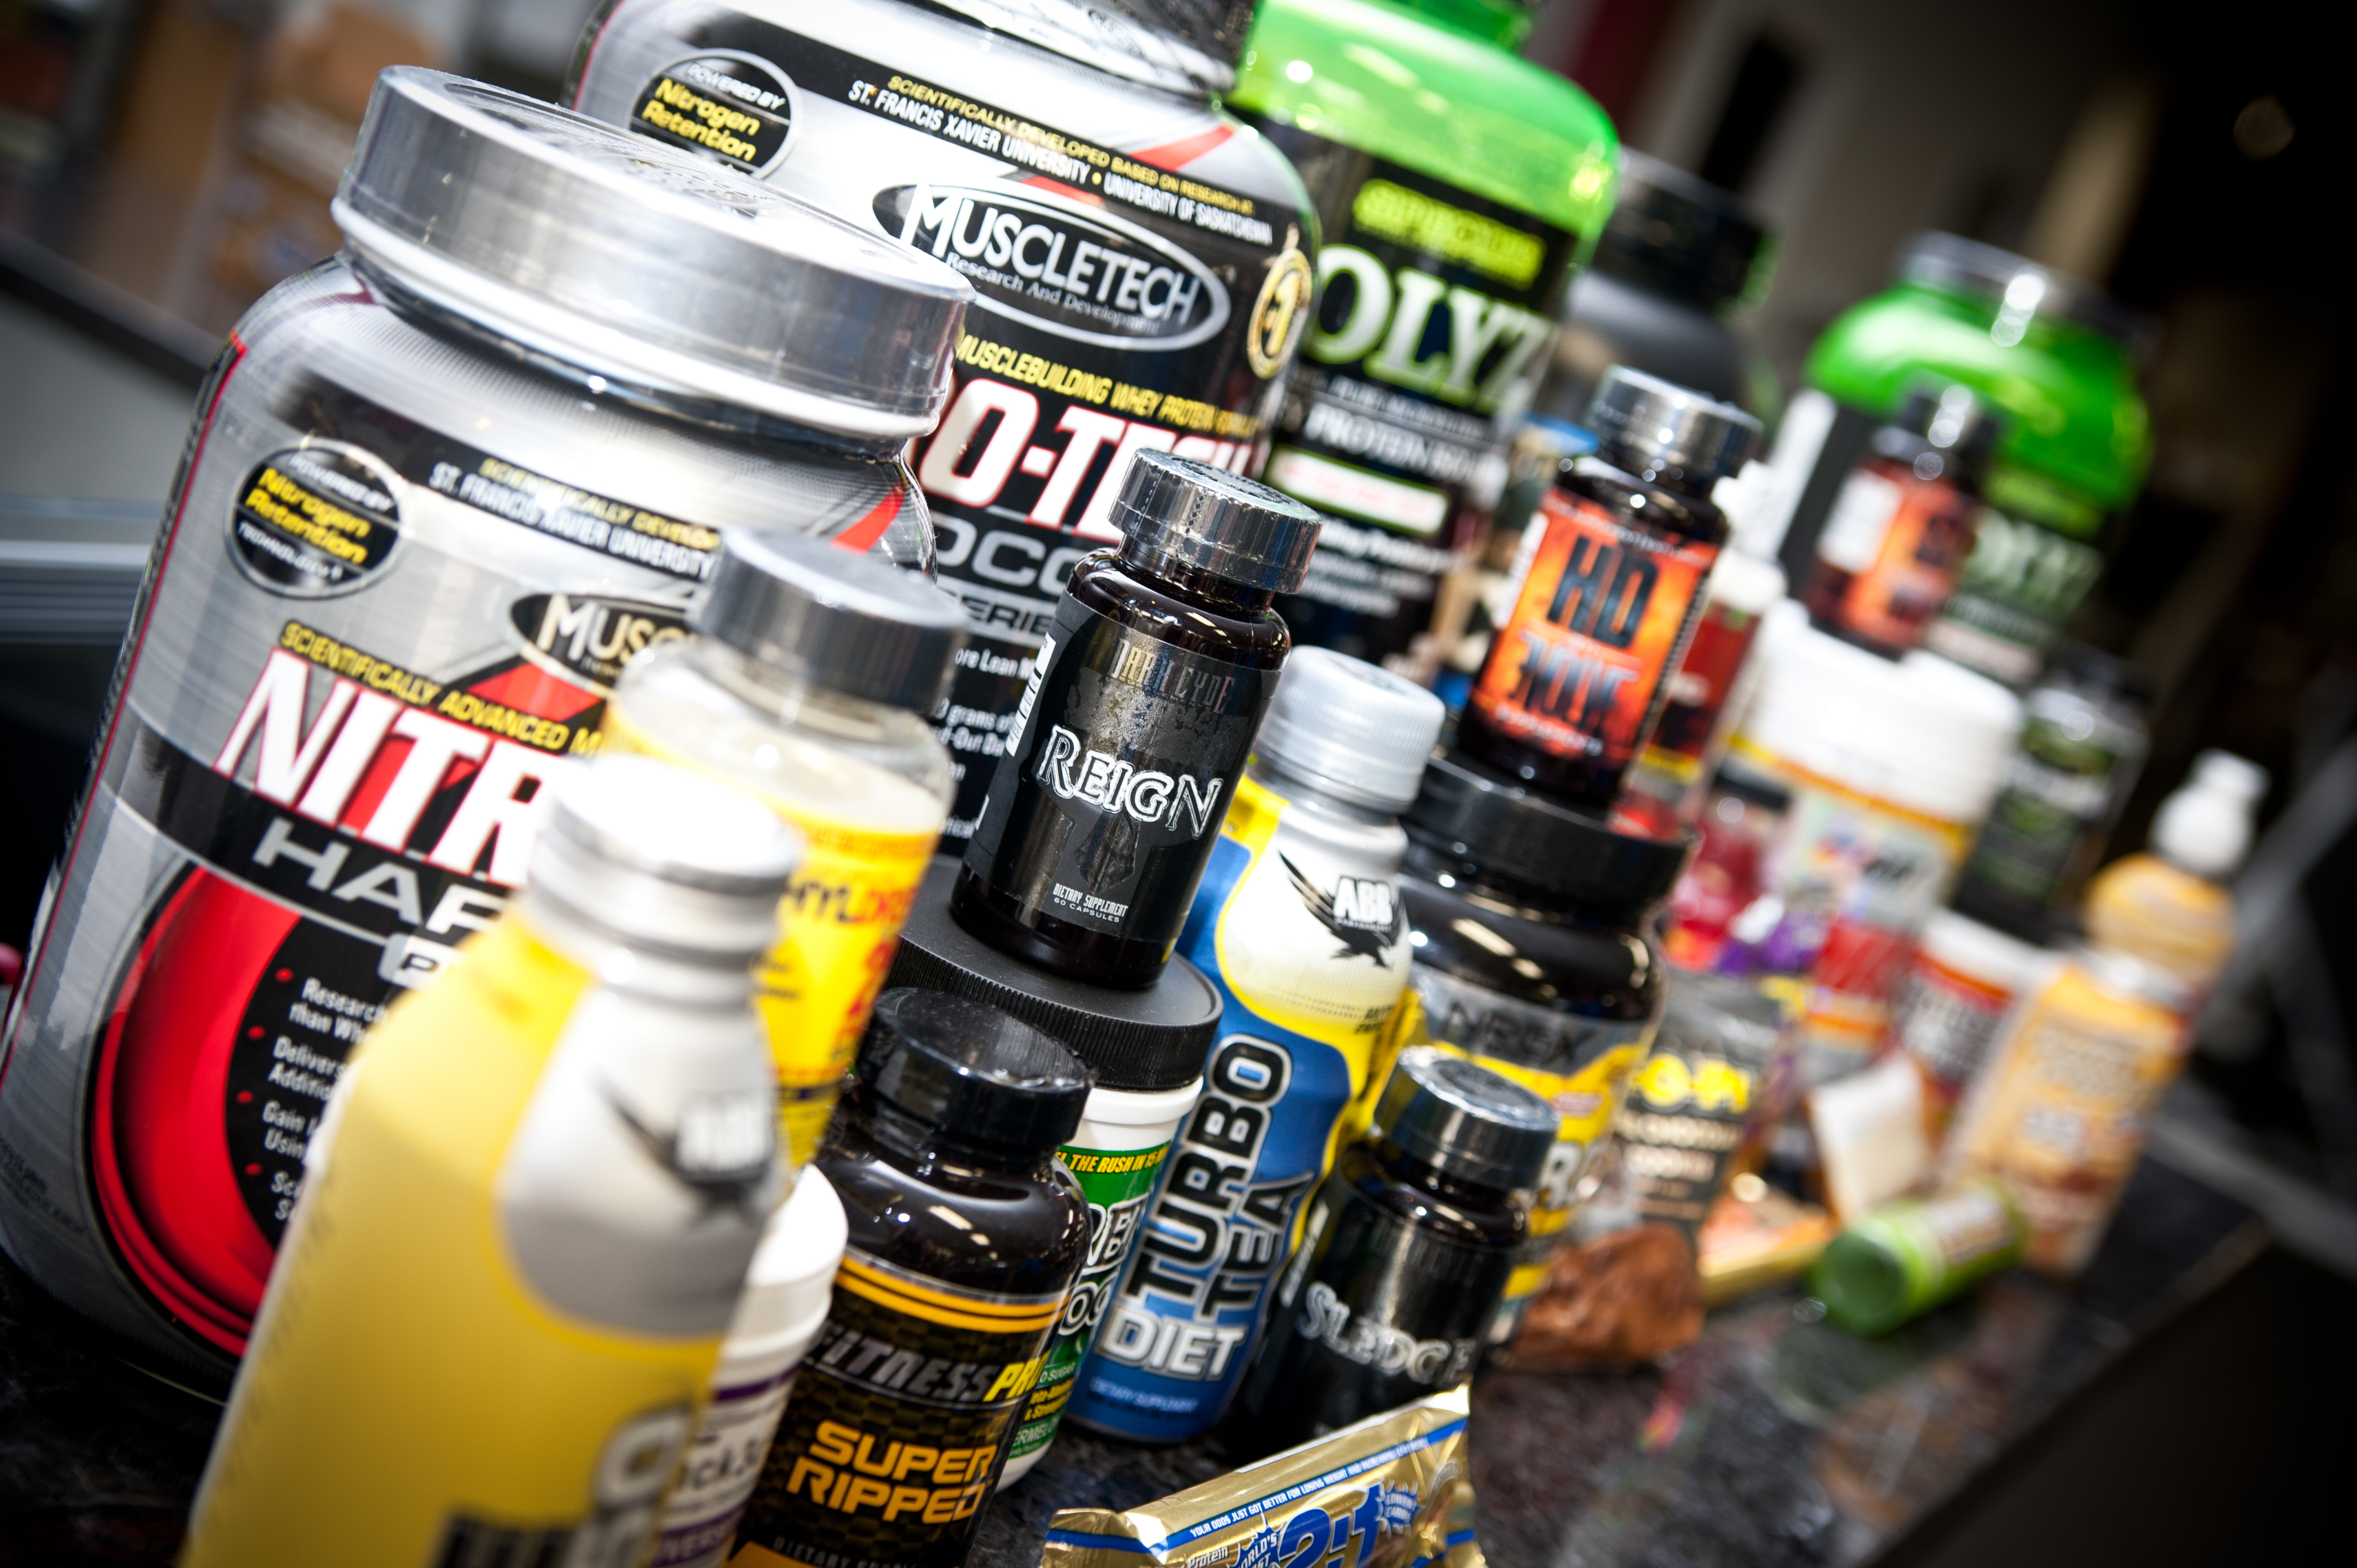 Top 5 Fitness Supplements - Steroids Live